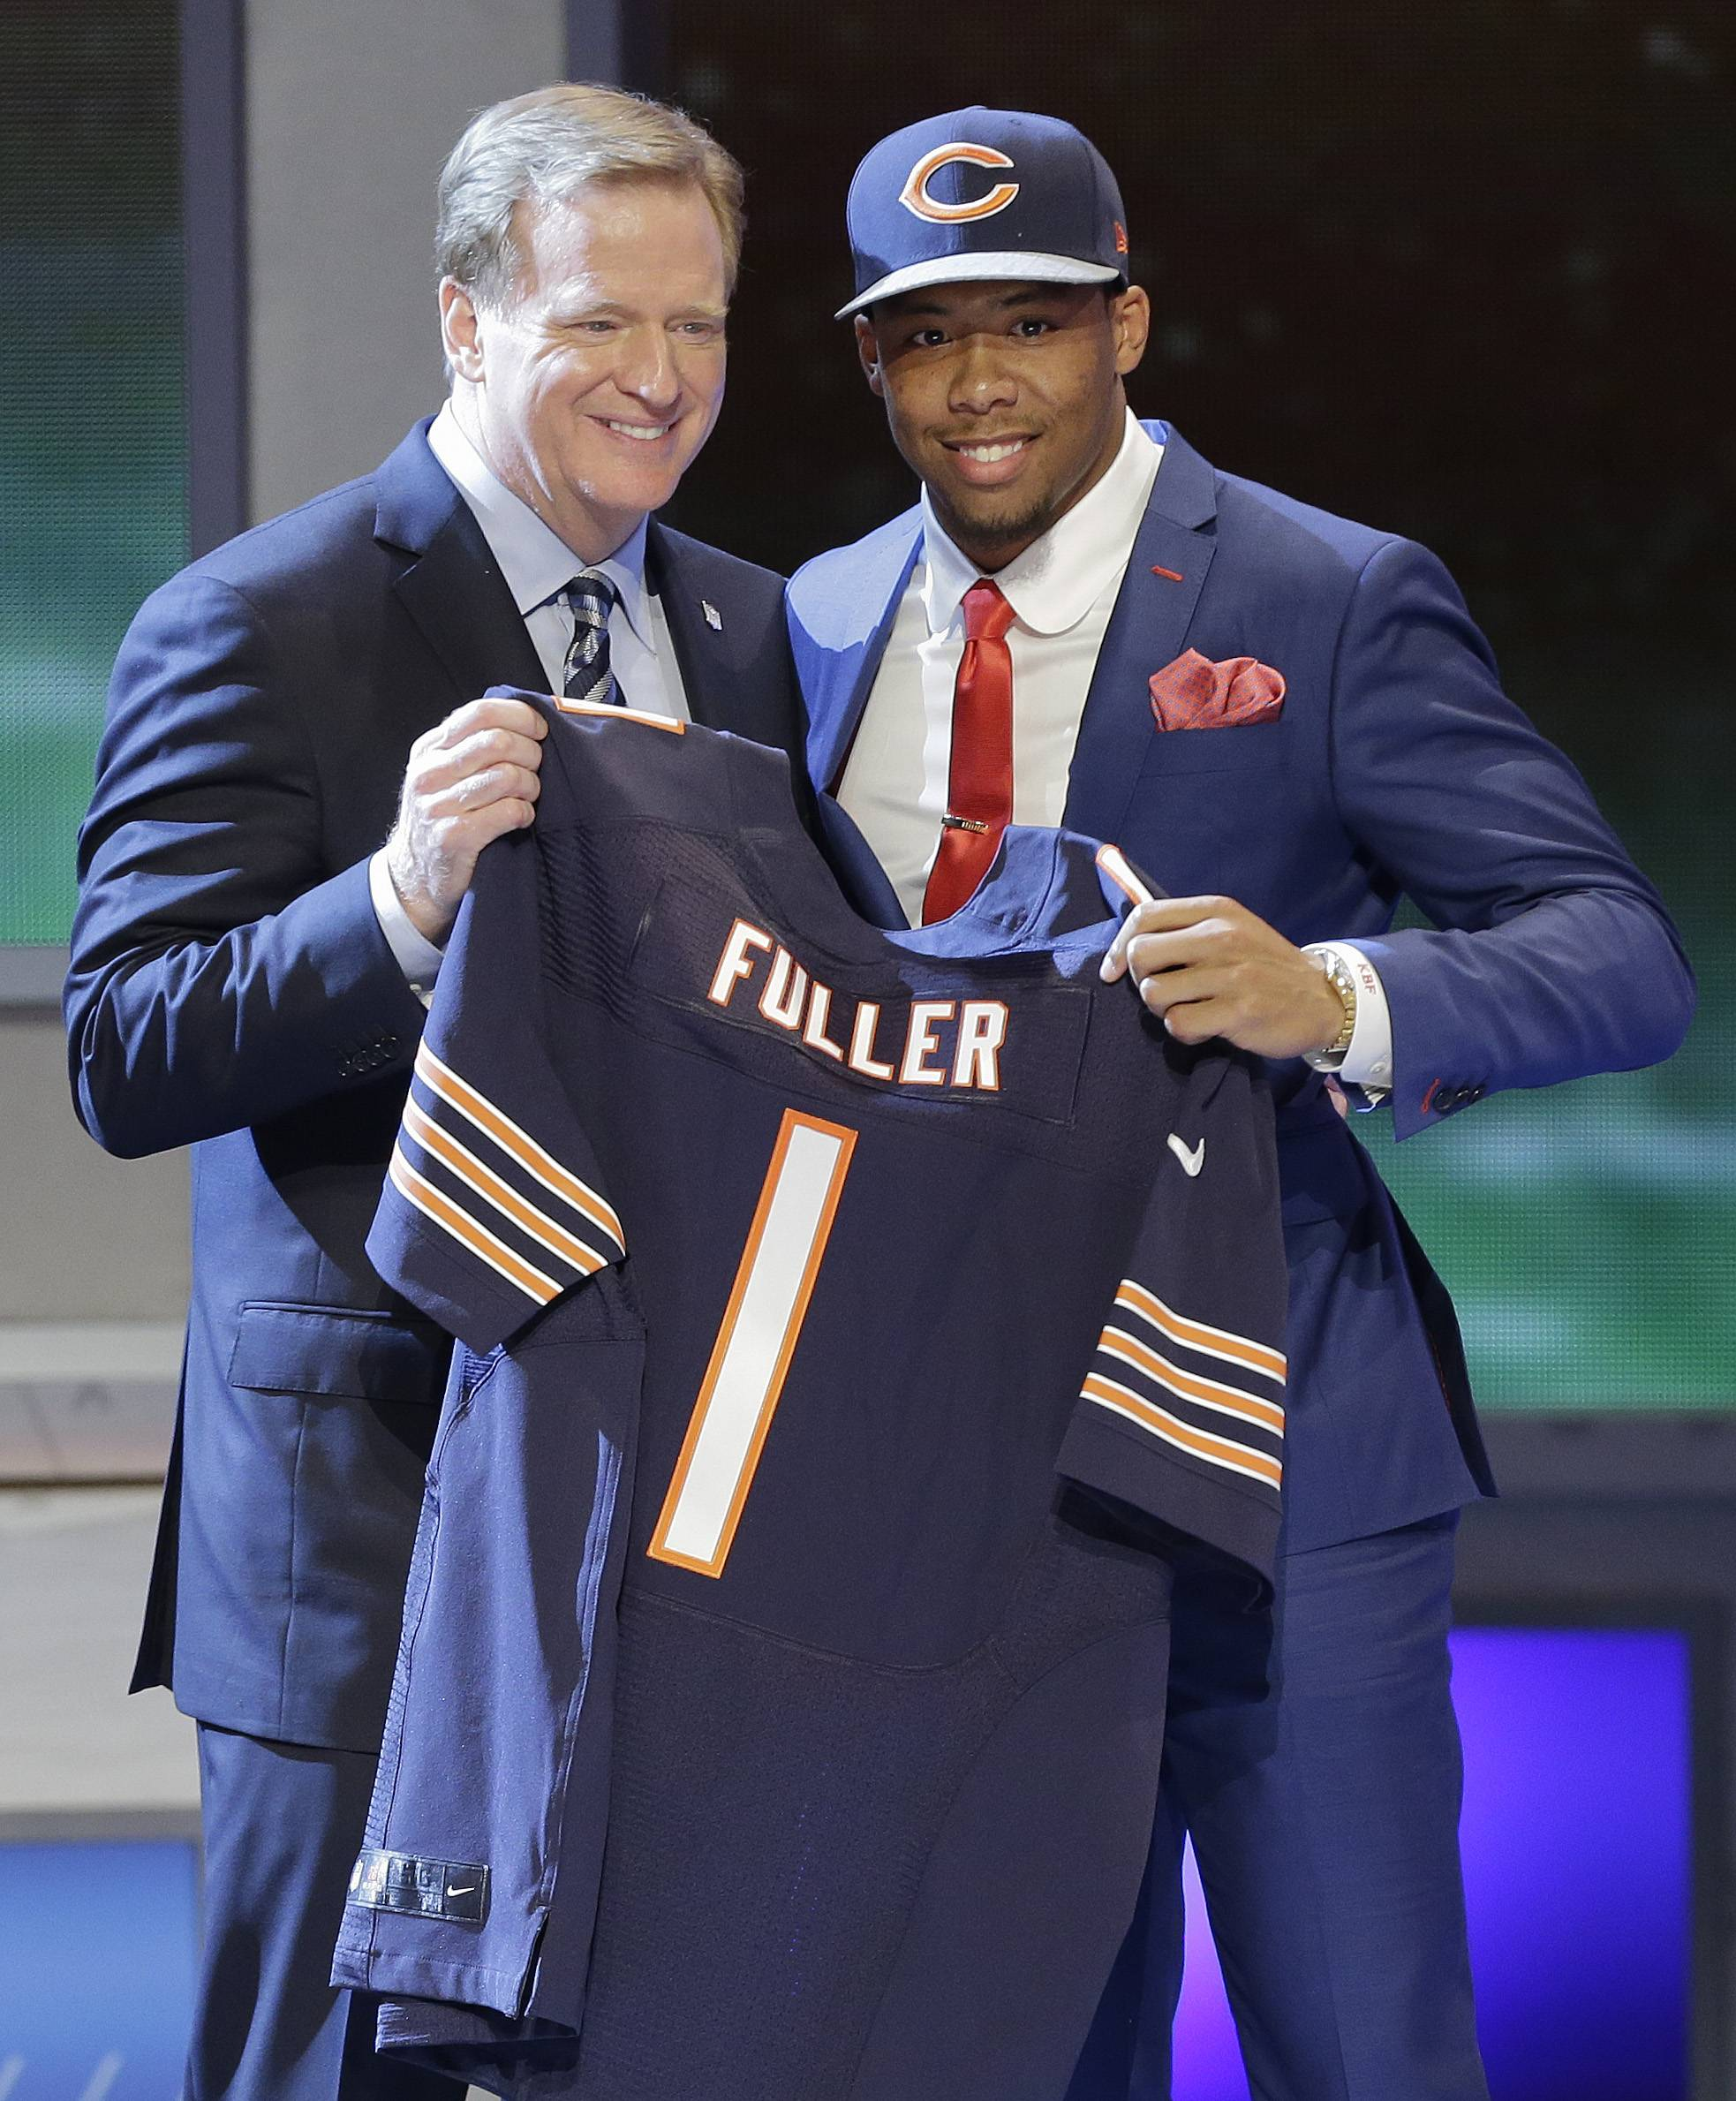 Virginia Tech cornerback Kyle Fuller poses with NFL Commissioner Roger Goodell after being selected by the Chicago Bears as the 14th pick in the first round of the 2014 NFL Draft, Thursday, May 8, 2014, in New York.